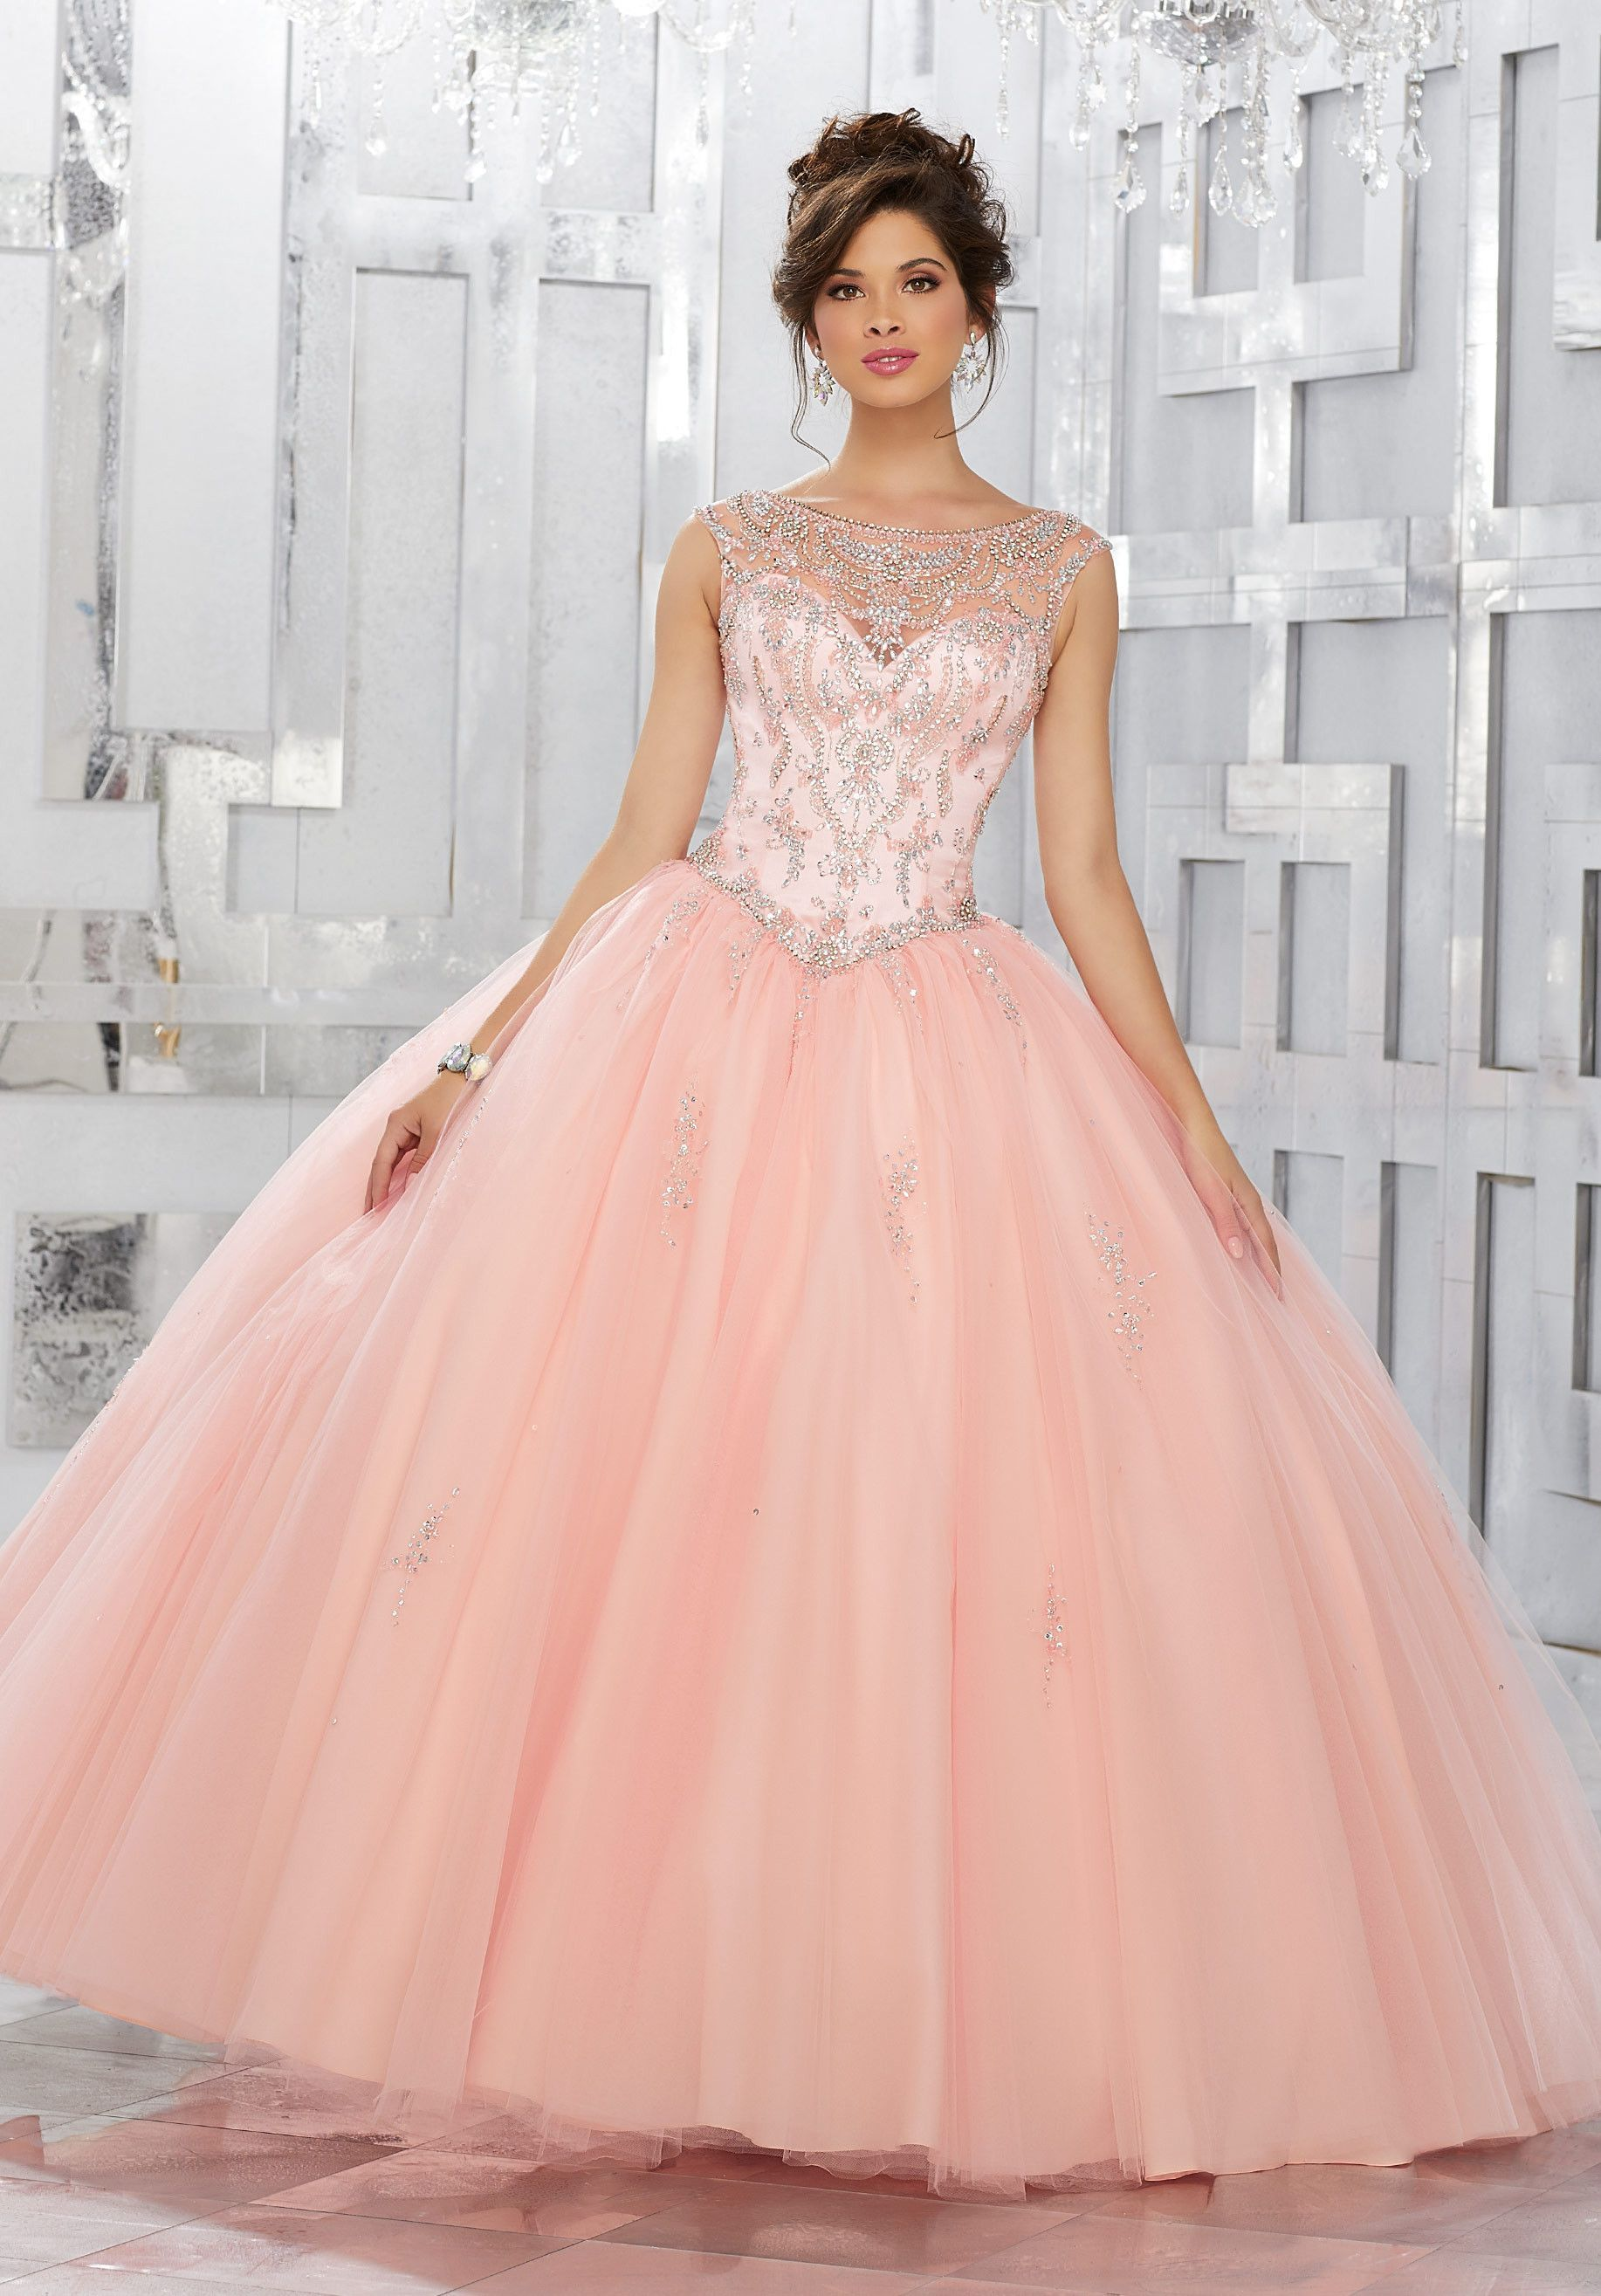 Beaded A-line Quinceanera Dress by Mori Lee Vizcaya 89150 | Fiestas ...